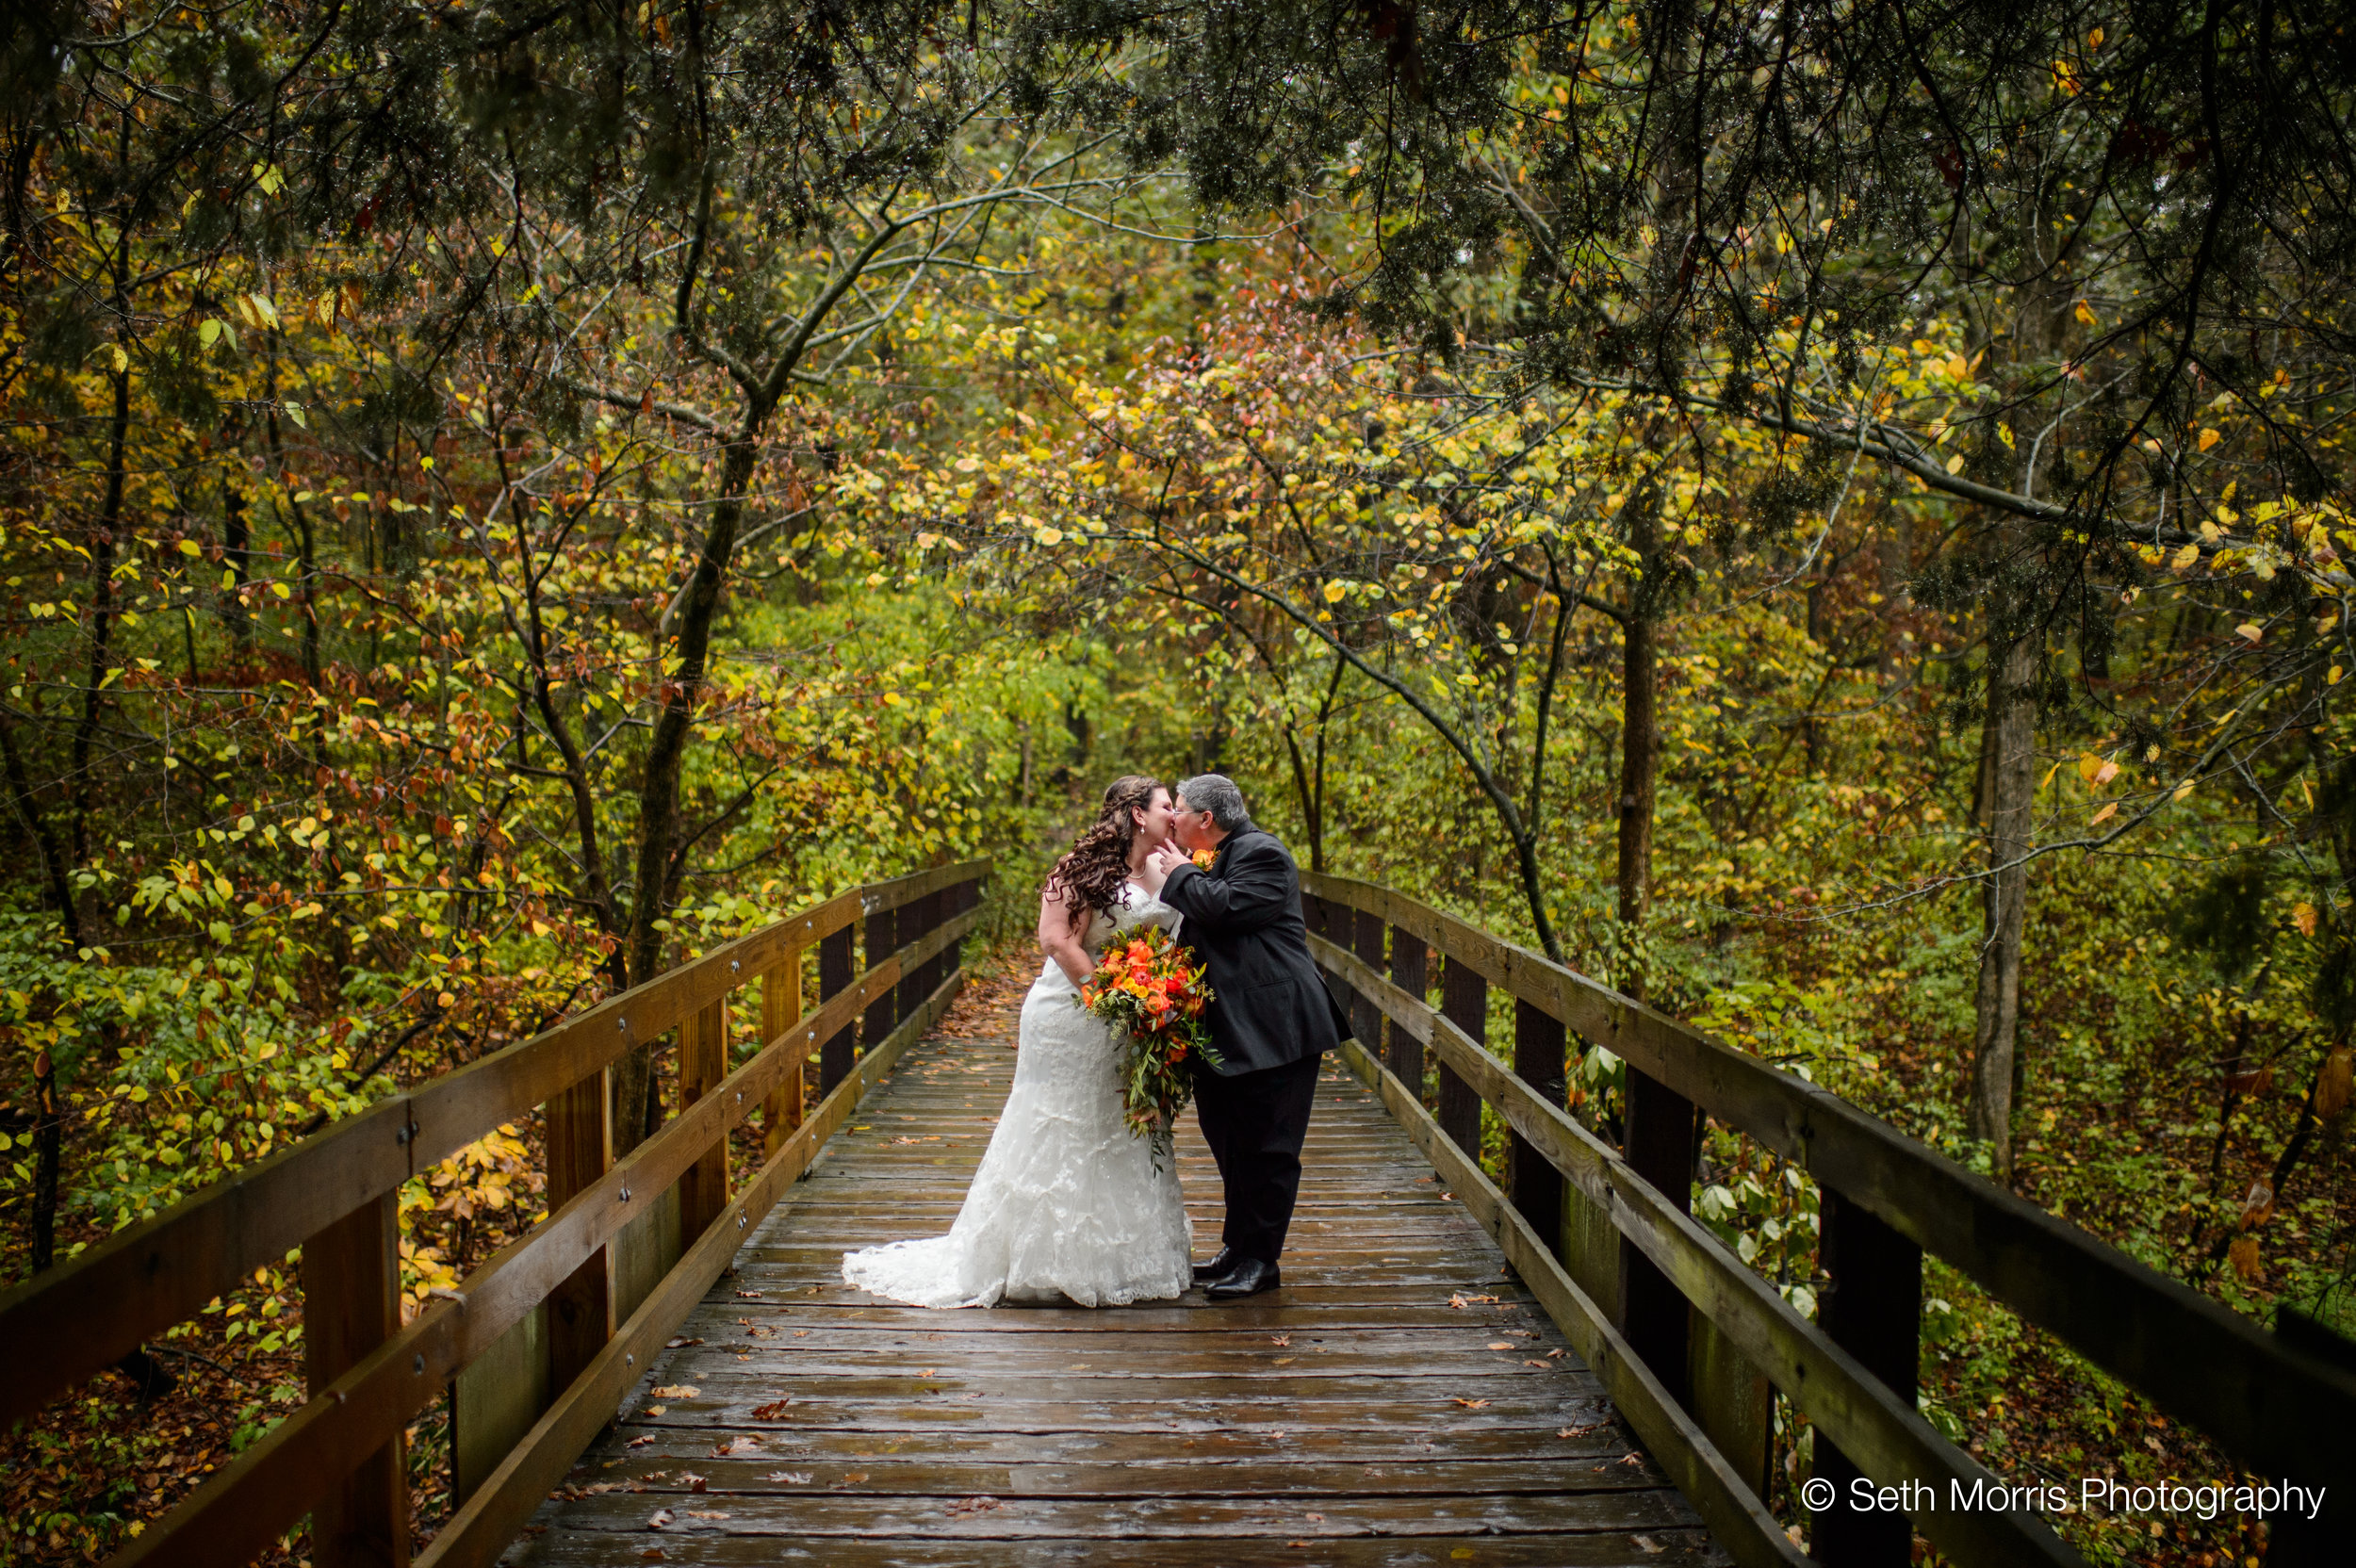 rainy-wedding-day-pictures-8.jpg